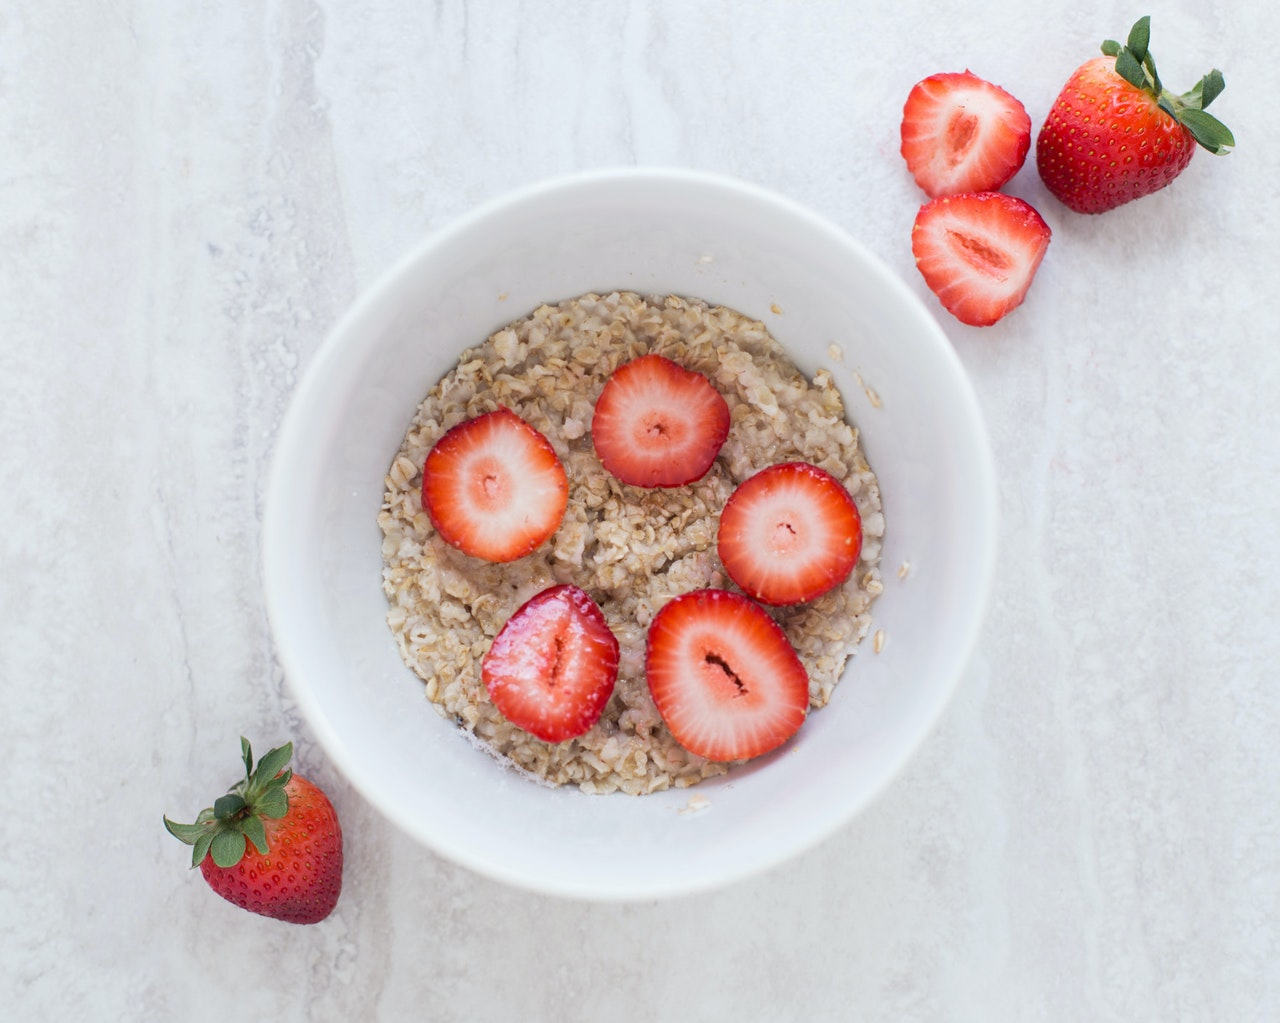 What Happens if you Eat Oats Daily